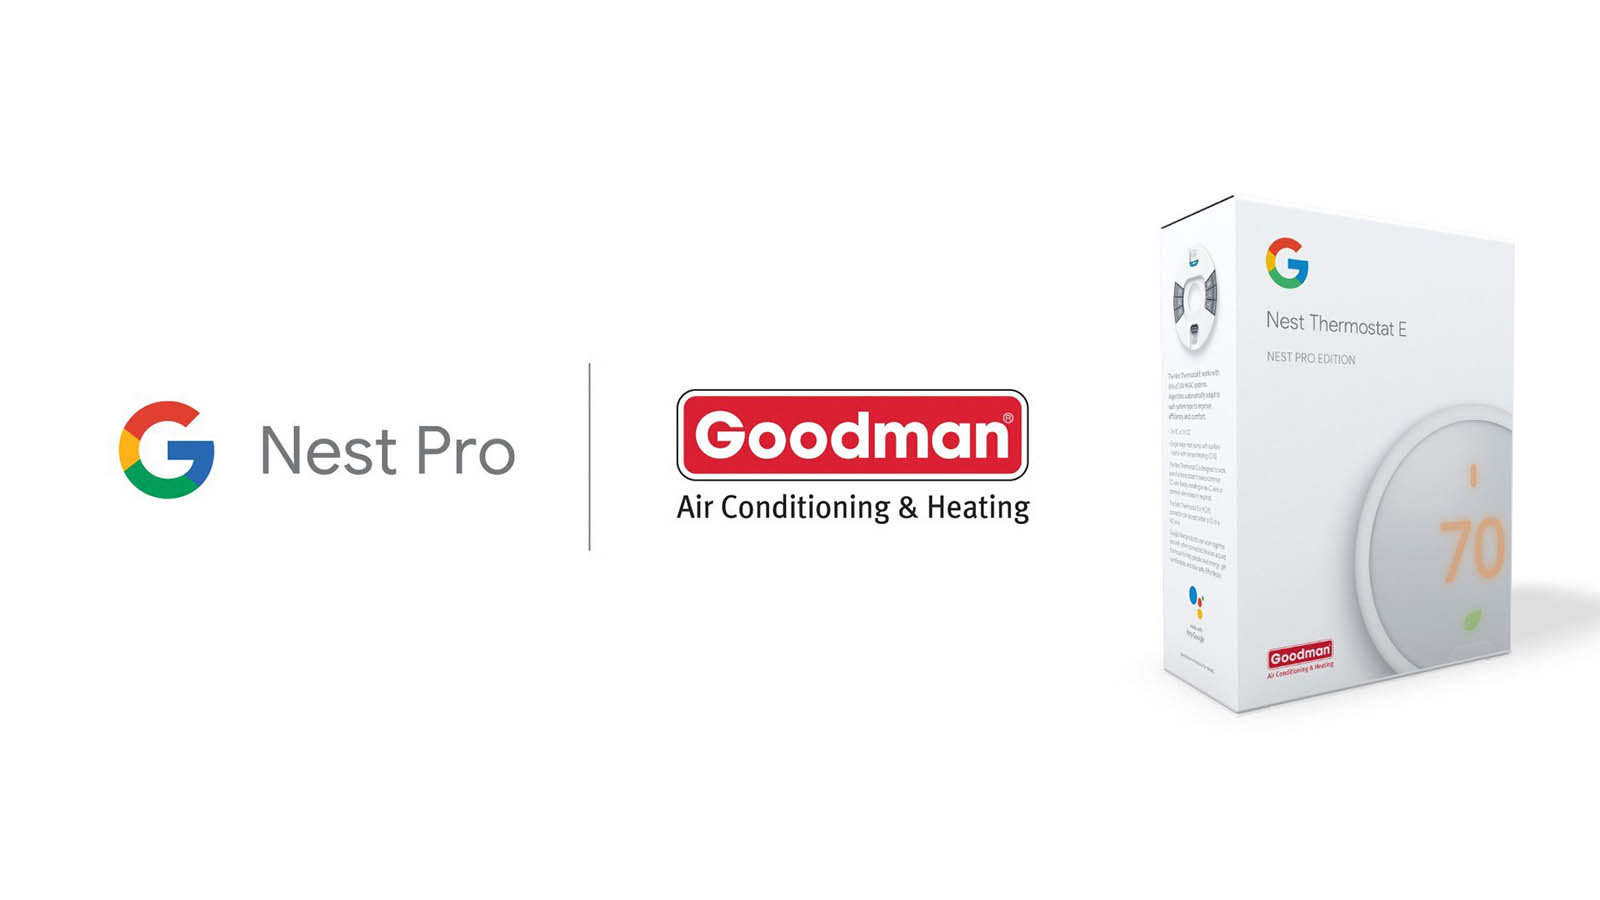 The Nest Thermostat E finds a new home with Goodman Pro installer partnership